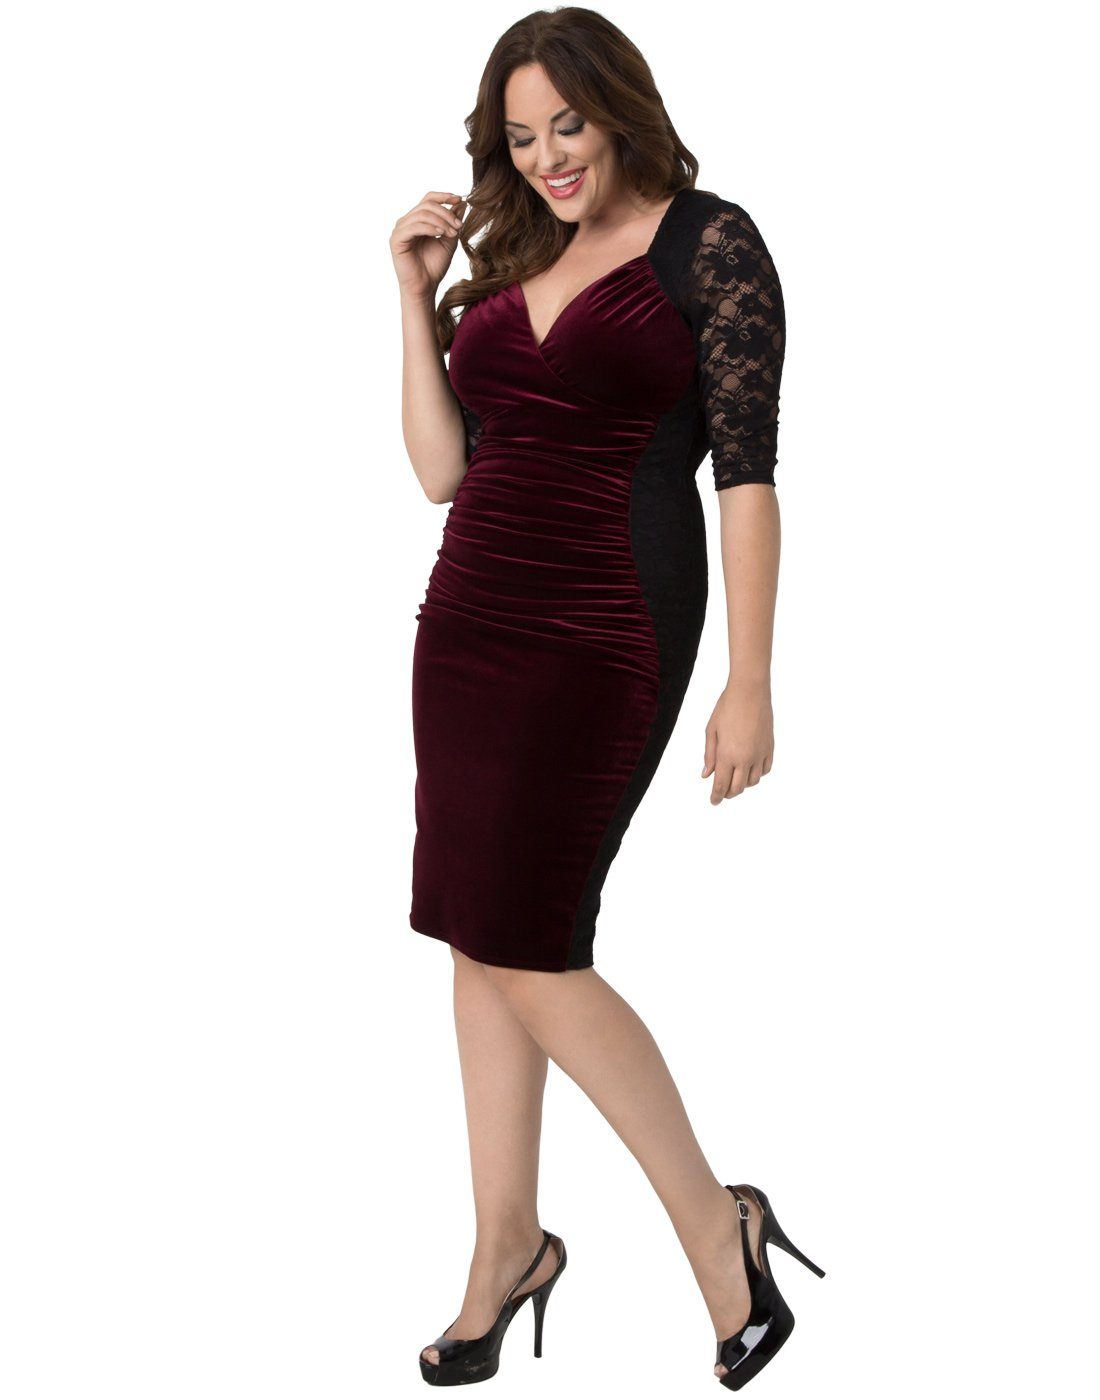 Kiyonna Women's Plus Size Hourglass Lace Dress 3X Wine